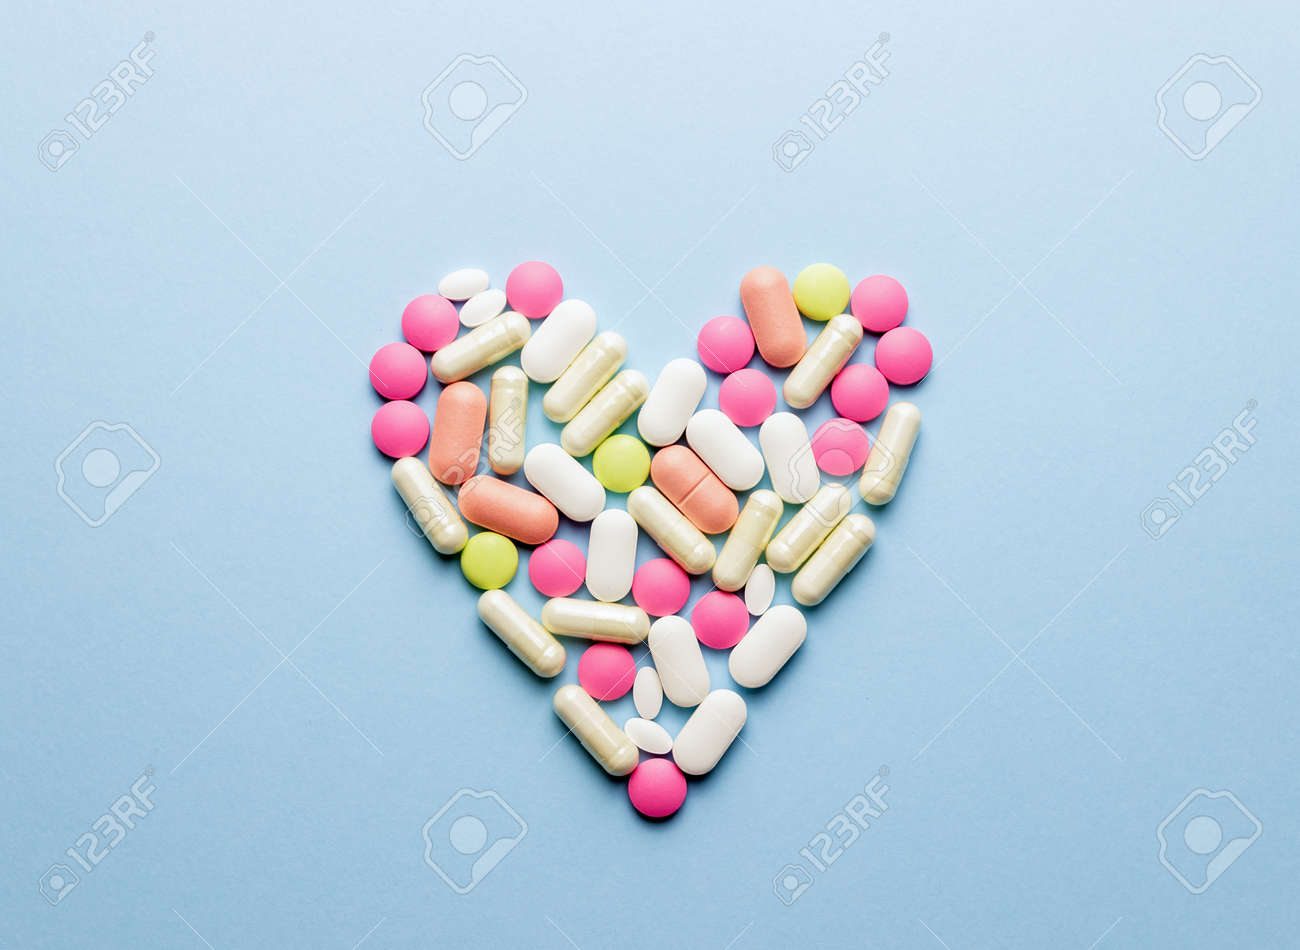 The heart is laid out of pills on a blue background. Health. Medicine. Pharmacy. - 154536881